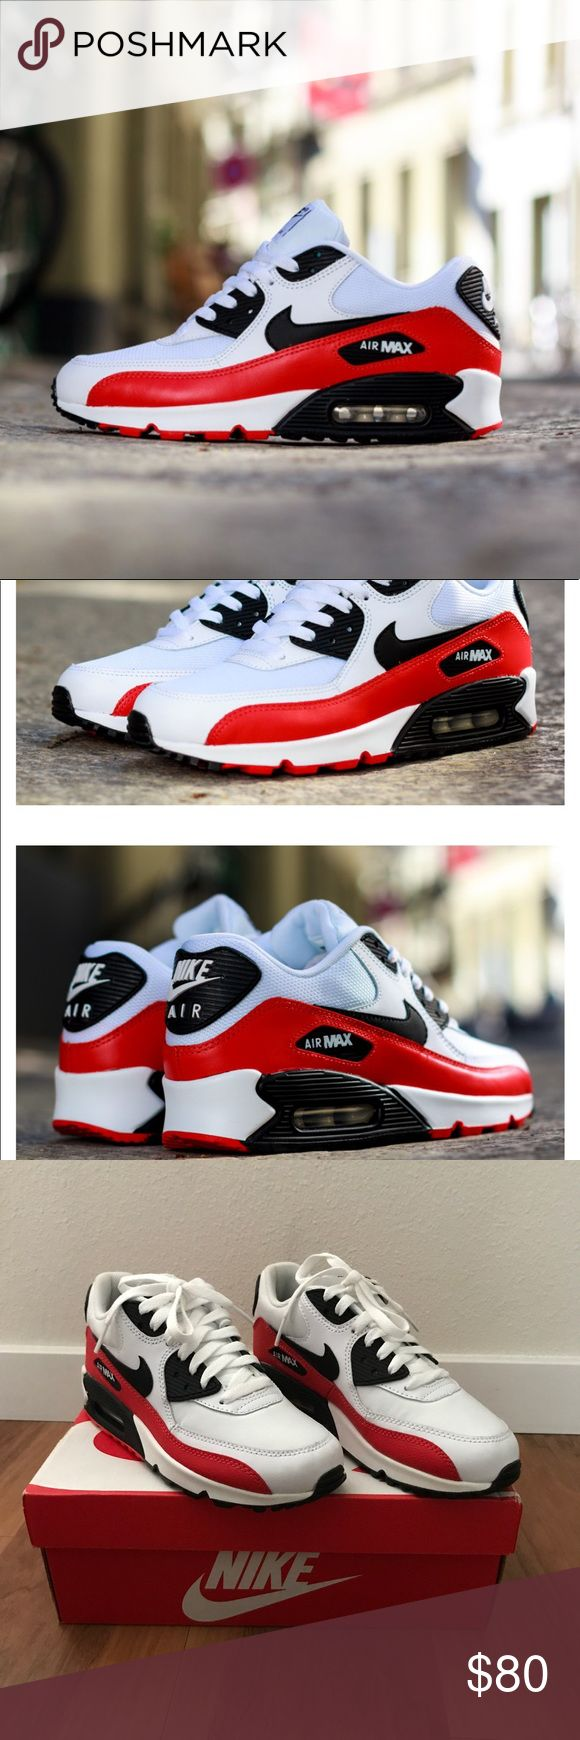 "Nike Air Max 90 Essential ""Light Crimson"" BRAND NEW, NO TRADES Nike Shoes Sneakers"